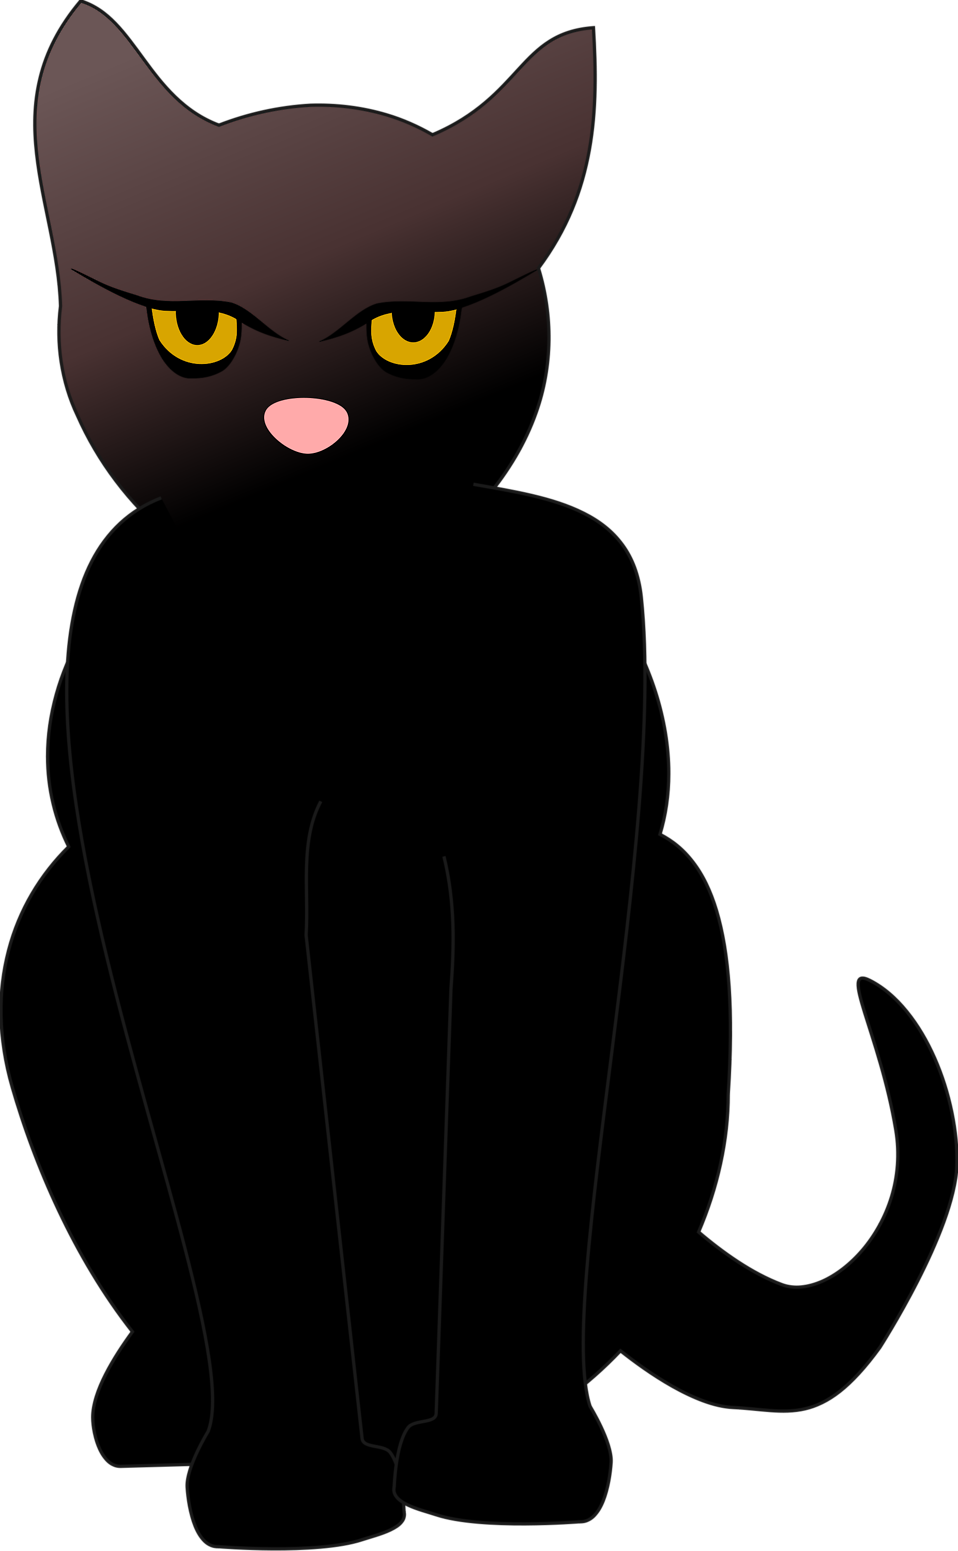 Cat Black | Free Stock Photo | Illustrated silhouette of a black cat ... banner free library